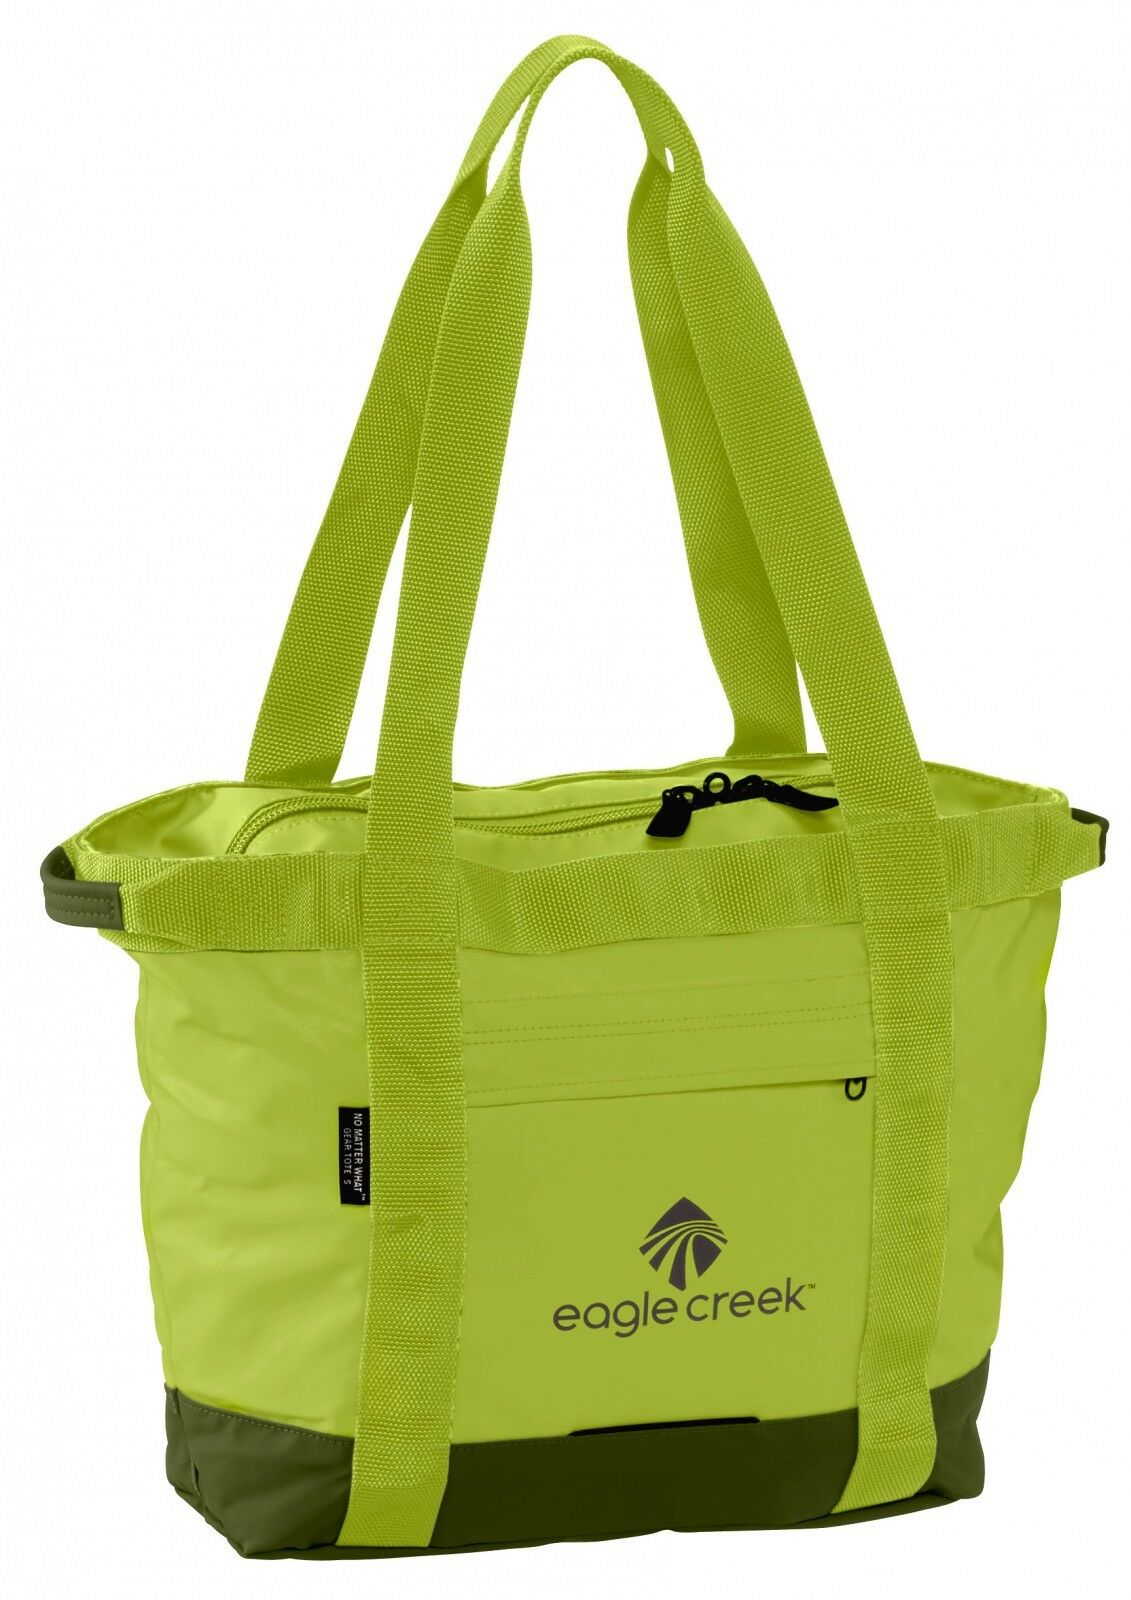 Eagle creek Shopper Bolsa No Matter What Gear Tote S Strobe Green